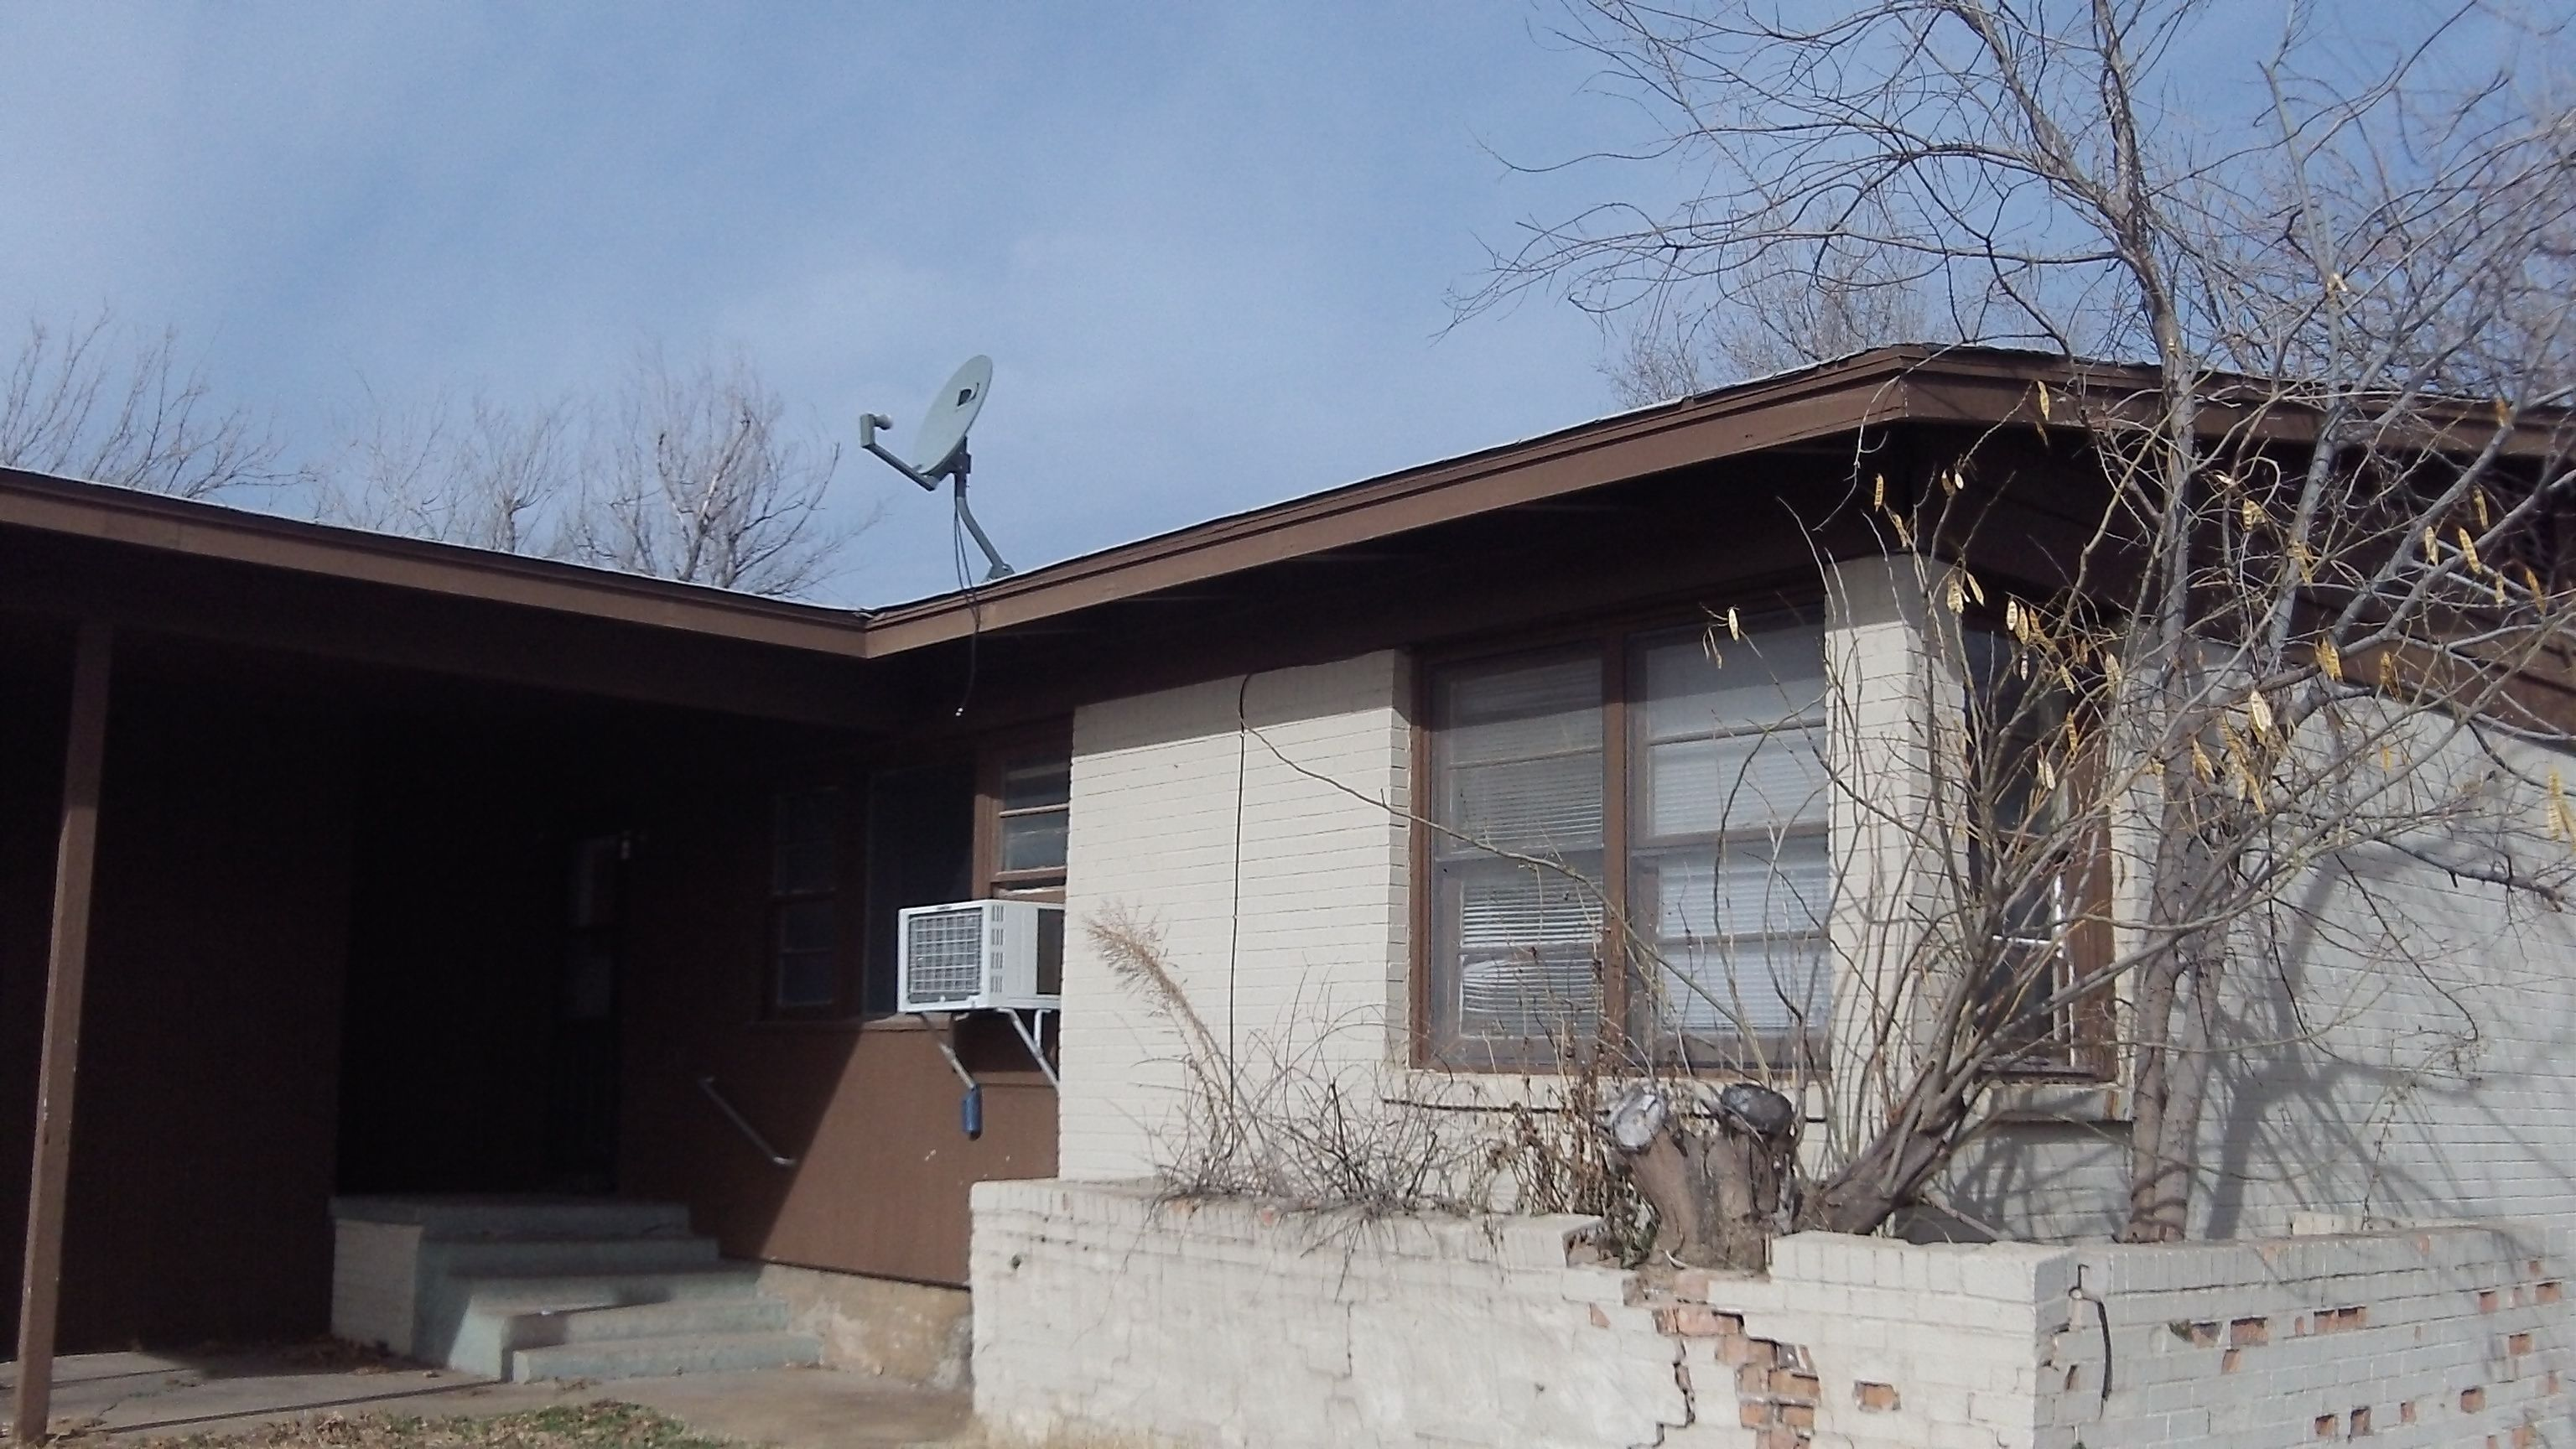 Investment property 2x 2 Bed/1 Bath listed at $50000. One car carport with small storage unit chain link fenced in yards that are ided between the ... & 2419-21 NW Cheyenne Lawton Oklahoma. Investment property 2x 2 Bed ...